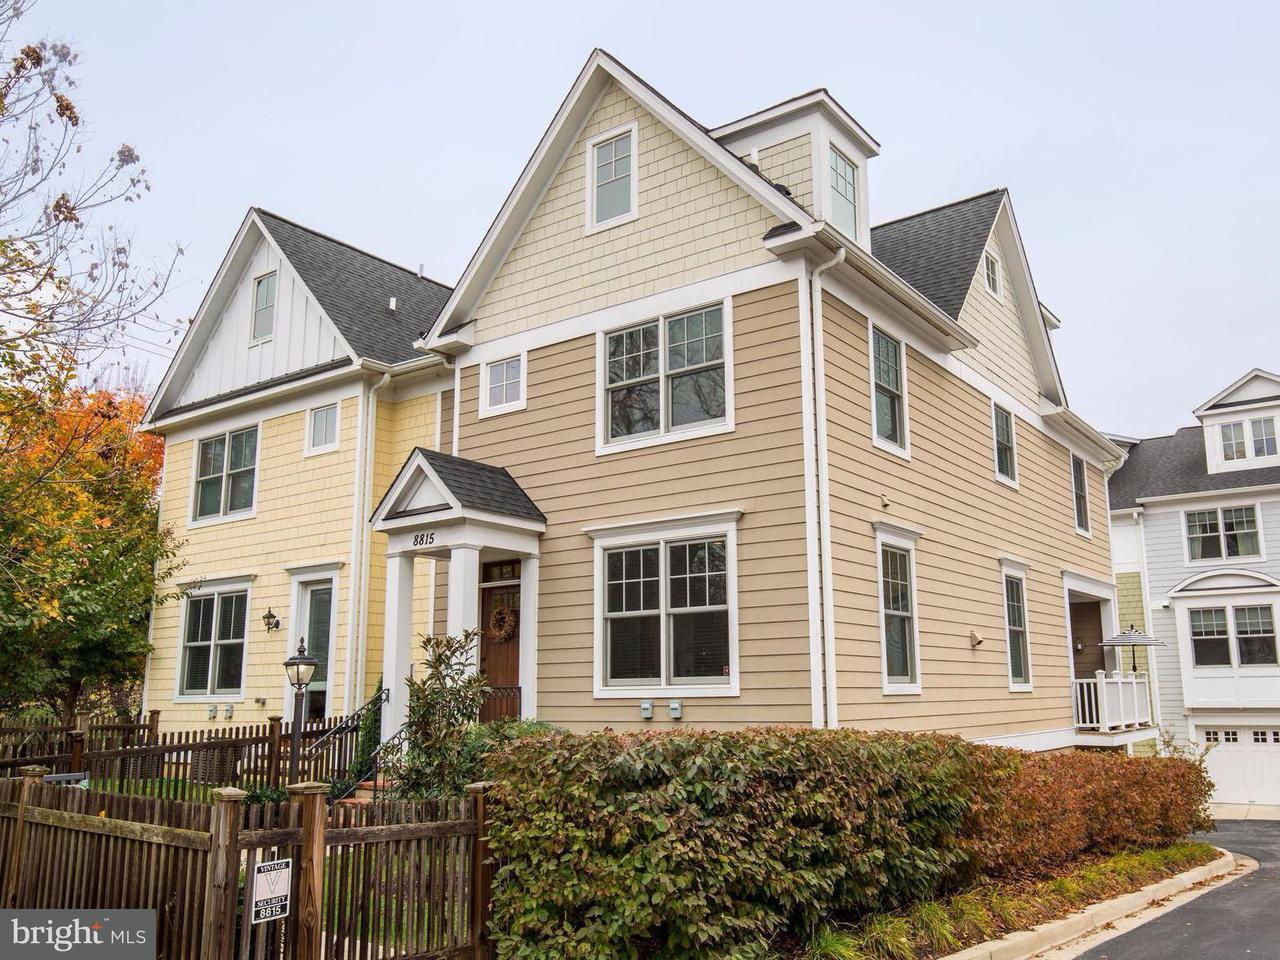 Townhouse for Sale at 8815 COURTS WAY 8815 COURTS WAY Silver Spring, Maryland 20910 United States